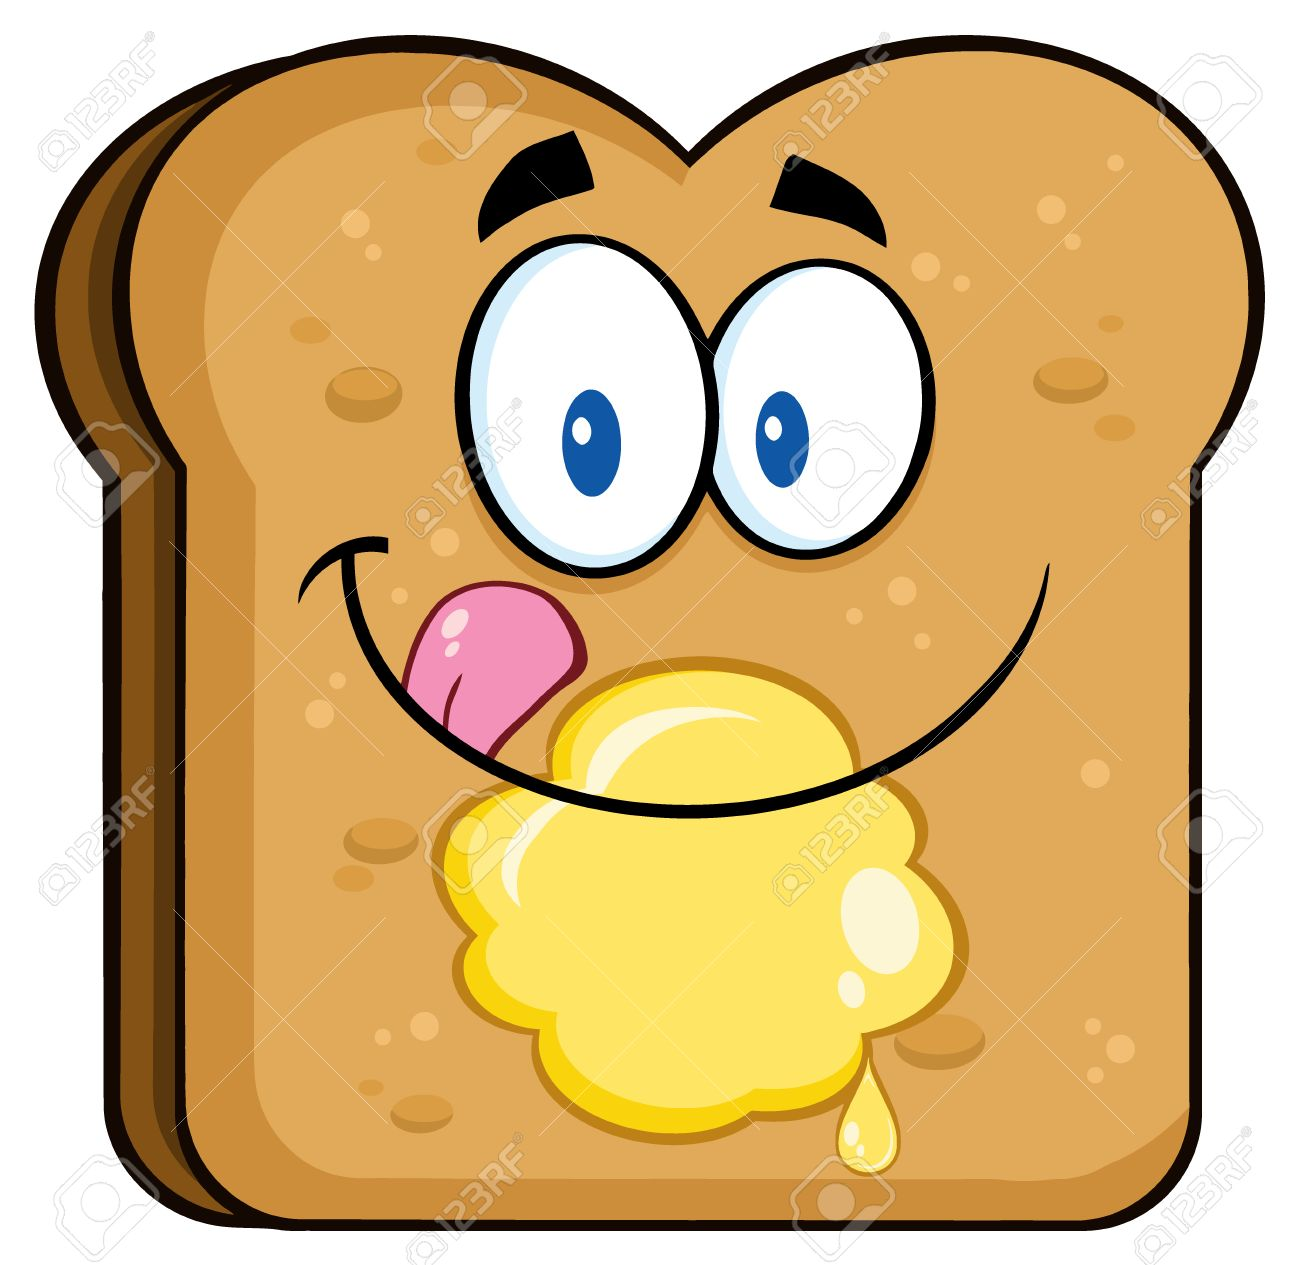 Image result for cartoon toast